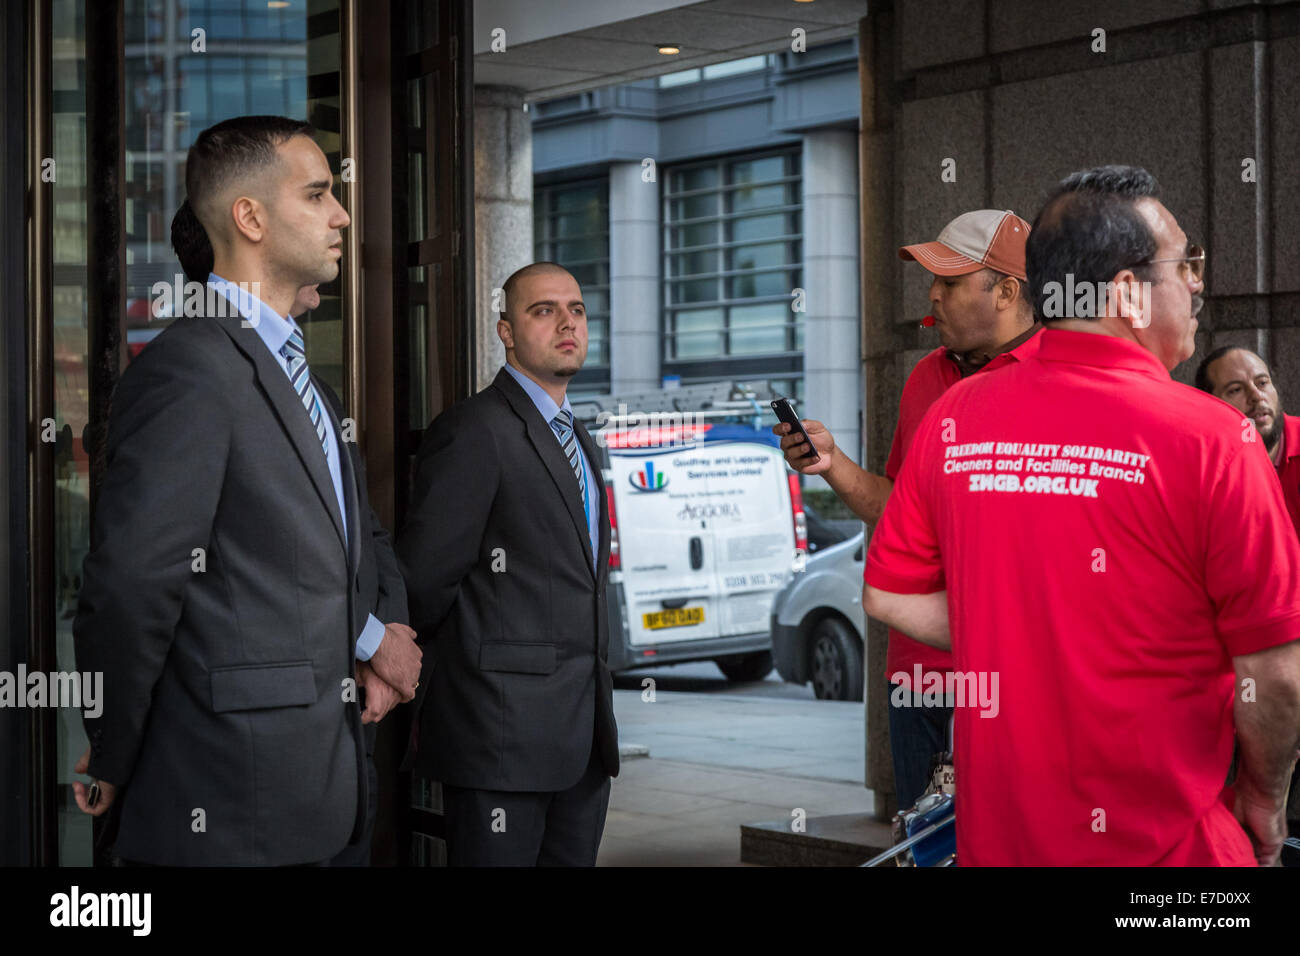 London, UK. 12th Sept, 2014.  IWGB Cleaners protest against Serco misconduct 2014 Credit:  Guy Corbishley/Alamy Stock Photo